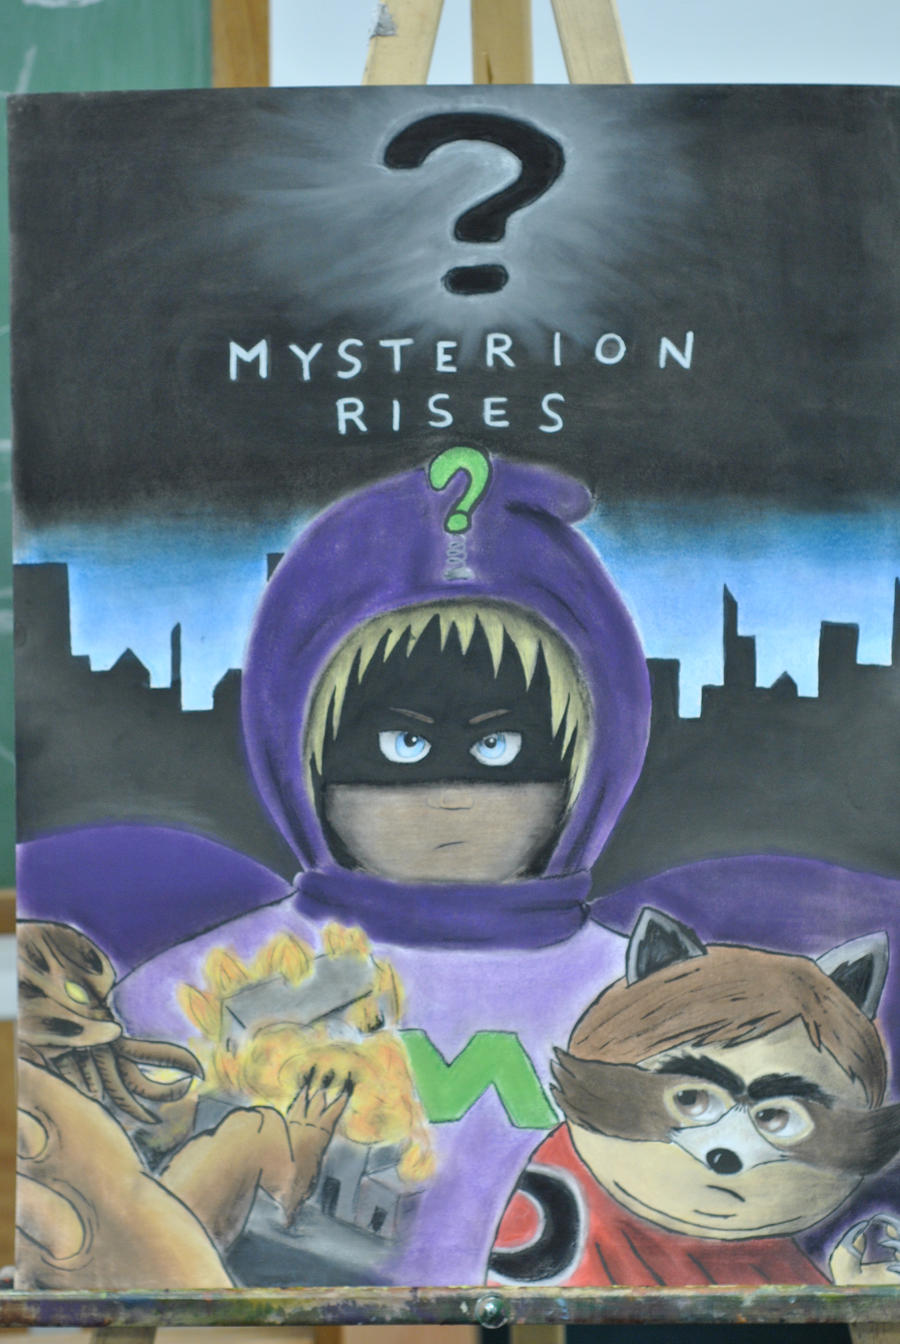 mysterion rises movie poster by cattoo444